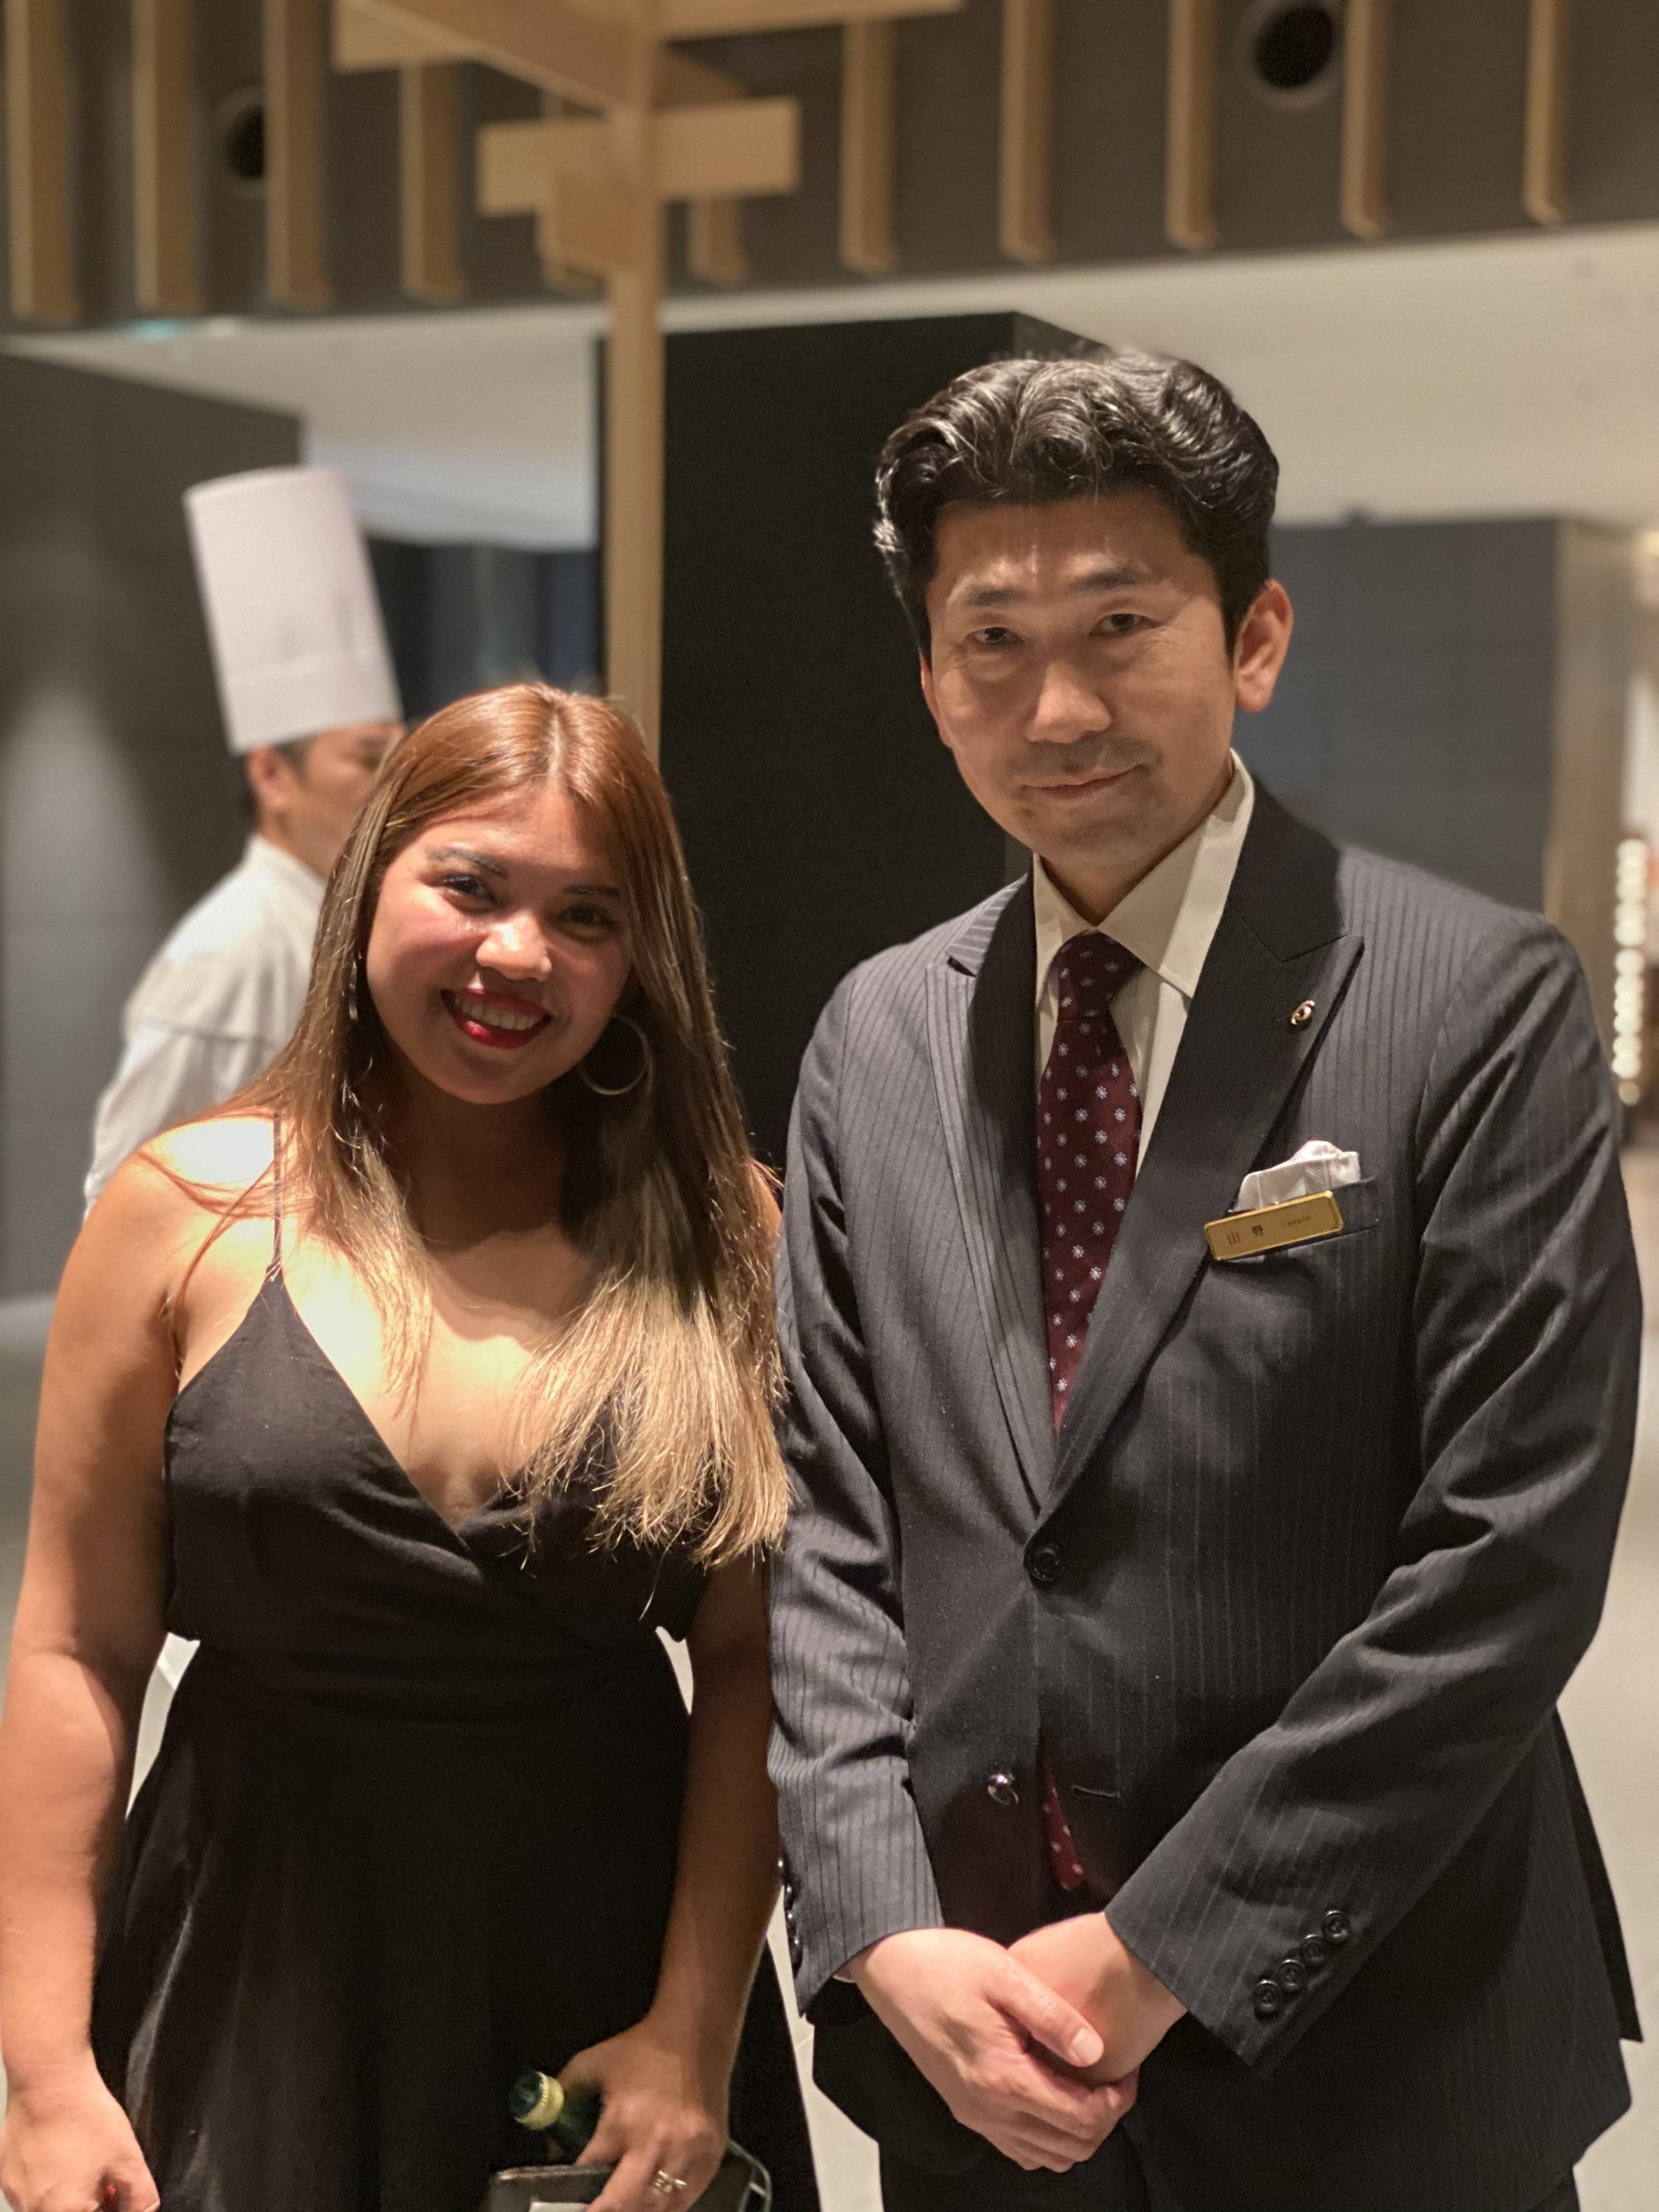 My Luxury Hotel Stay Experience with The Capitol Hotel Tokyu